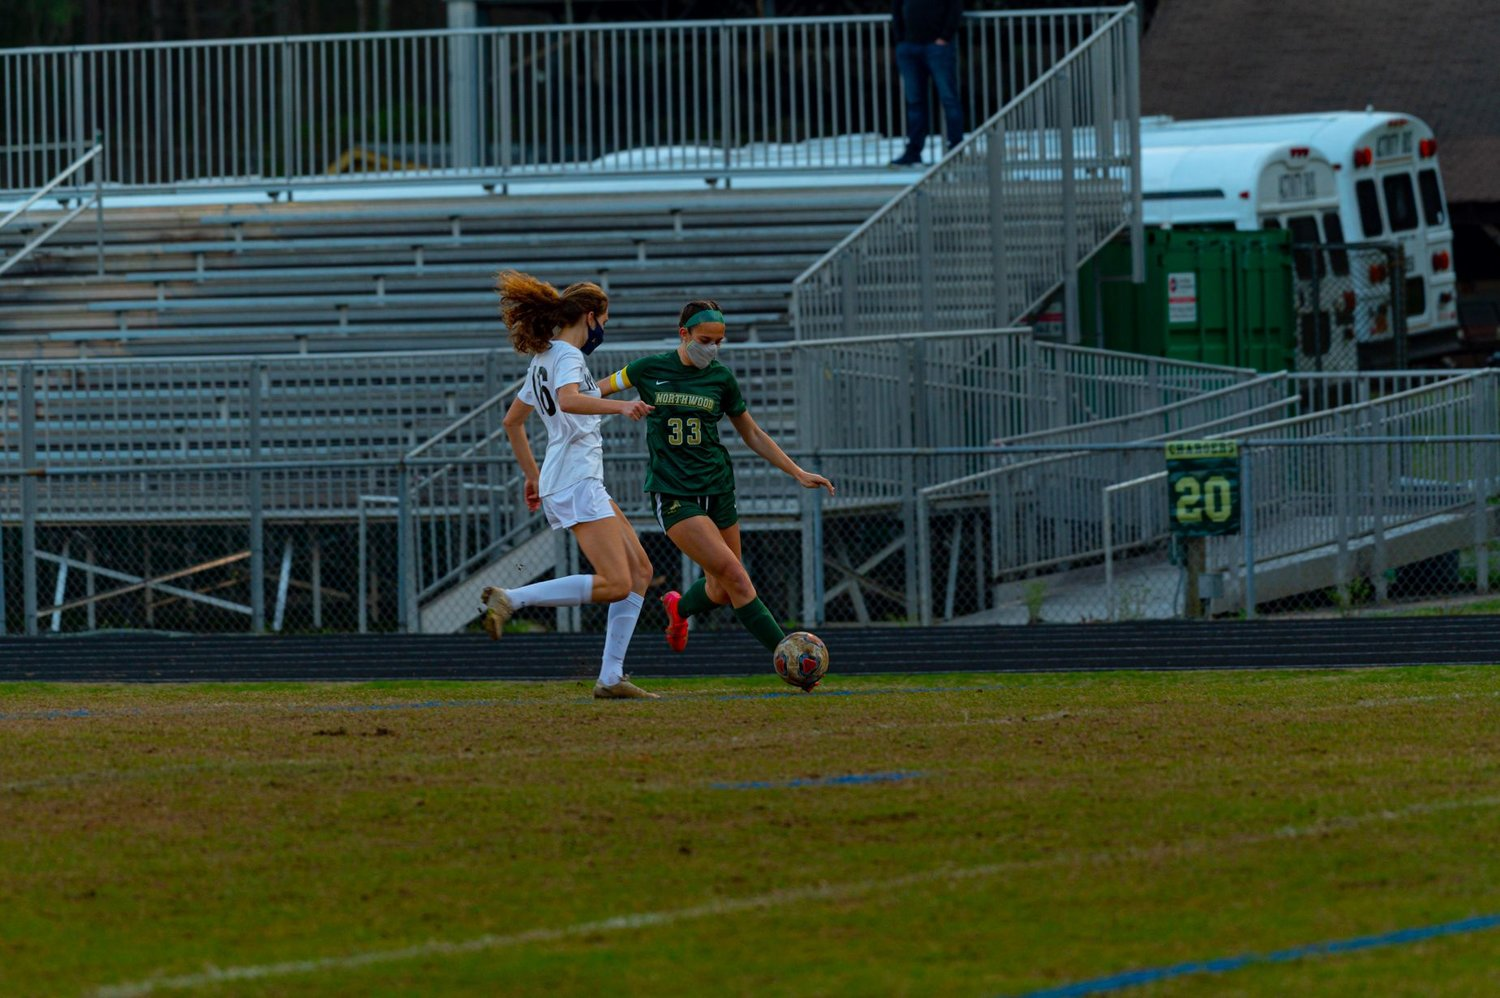 Northwood senior forward Imogene Cook prepares to send in a cross as East Chapel Hill defender Claire Parker attempts to close her down. Cook, one of three seniors on Northwood, had a strong individual performance in the Chargers' 2-0 loss to East Chapel Hill on March 30 in Pittsboro.